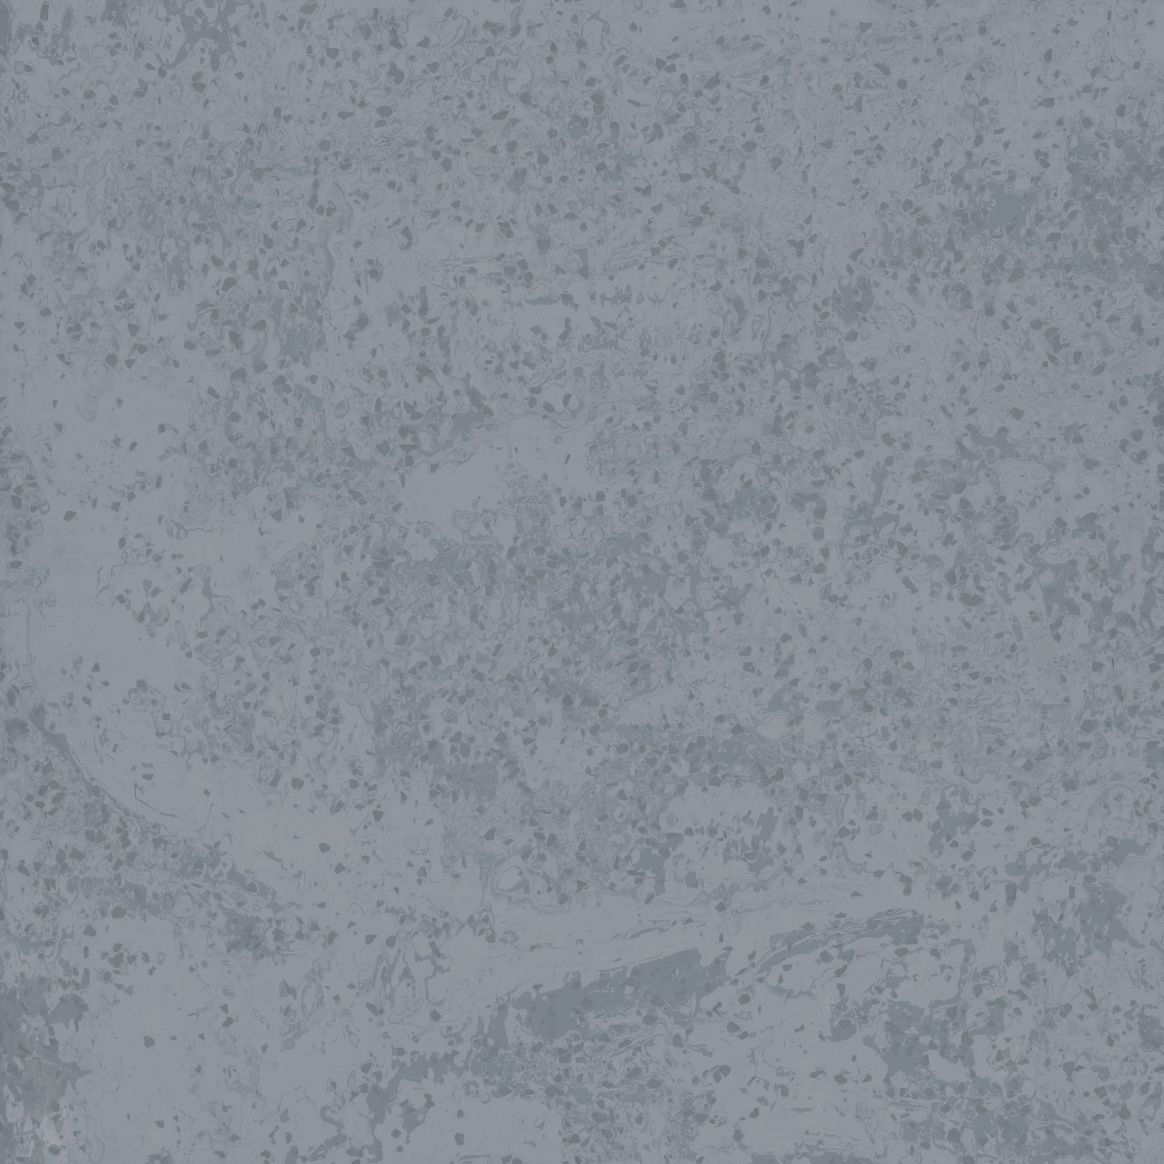 Mannington Teles Tile 17 1/2 x 17 1/2 Great Lakes